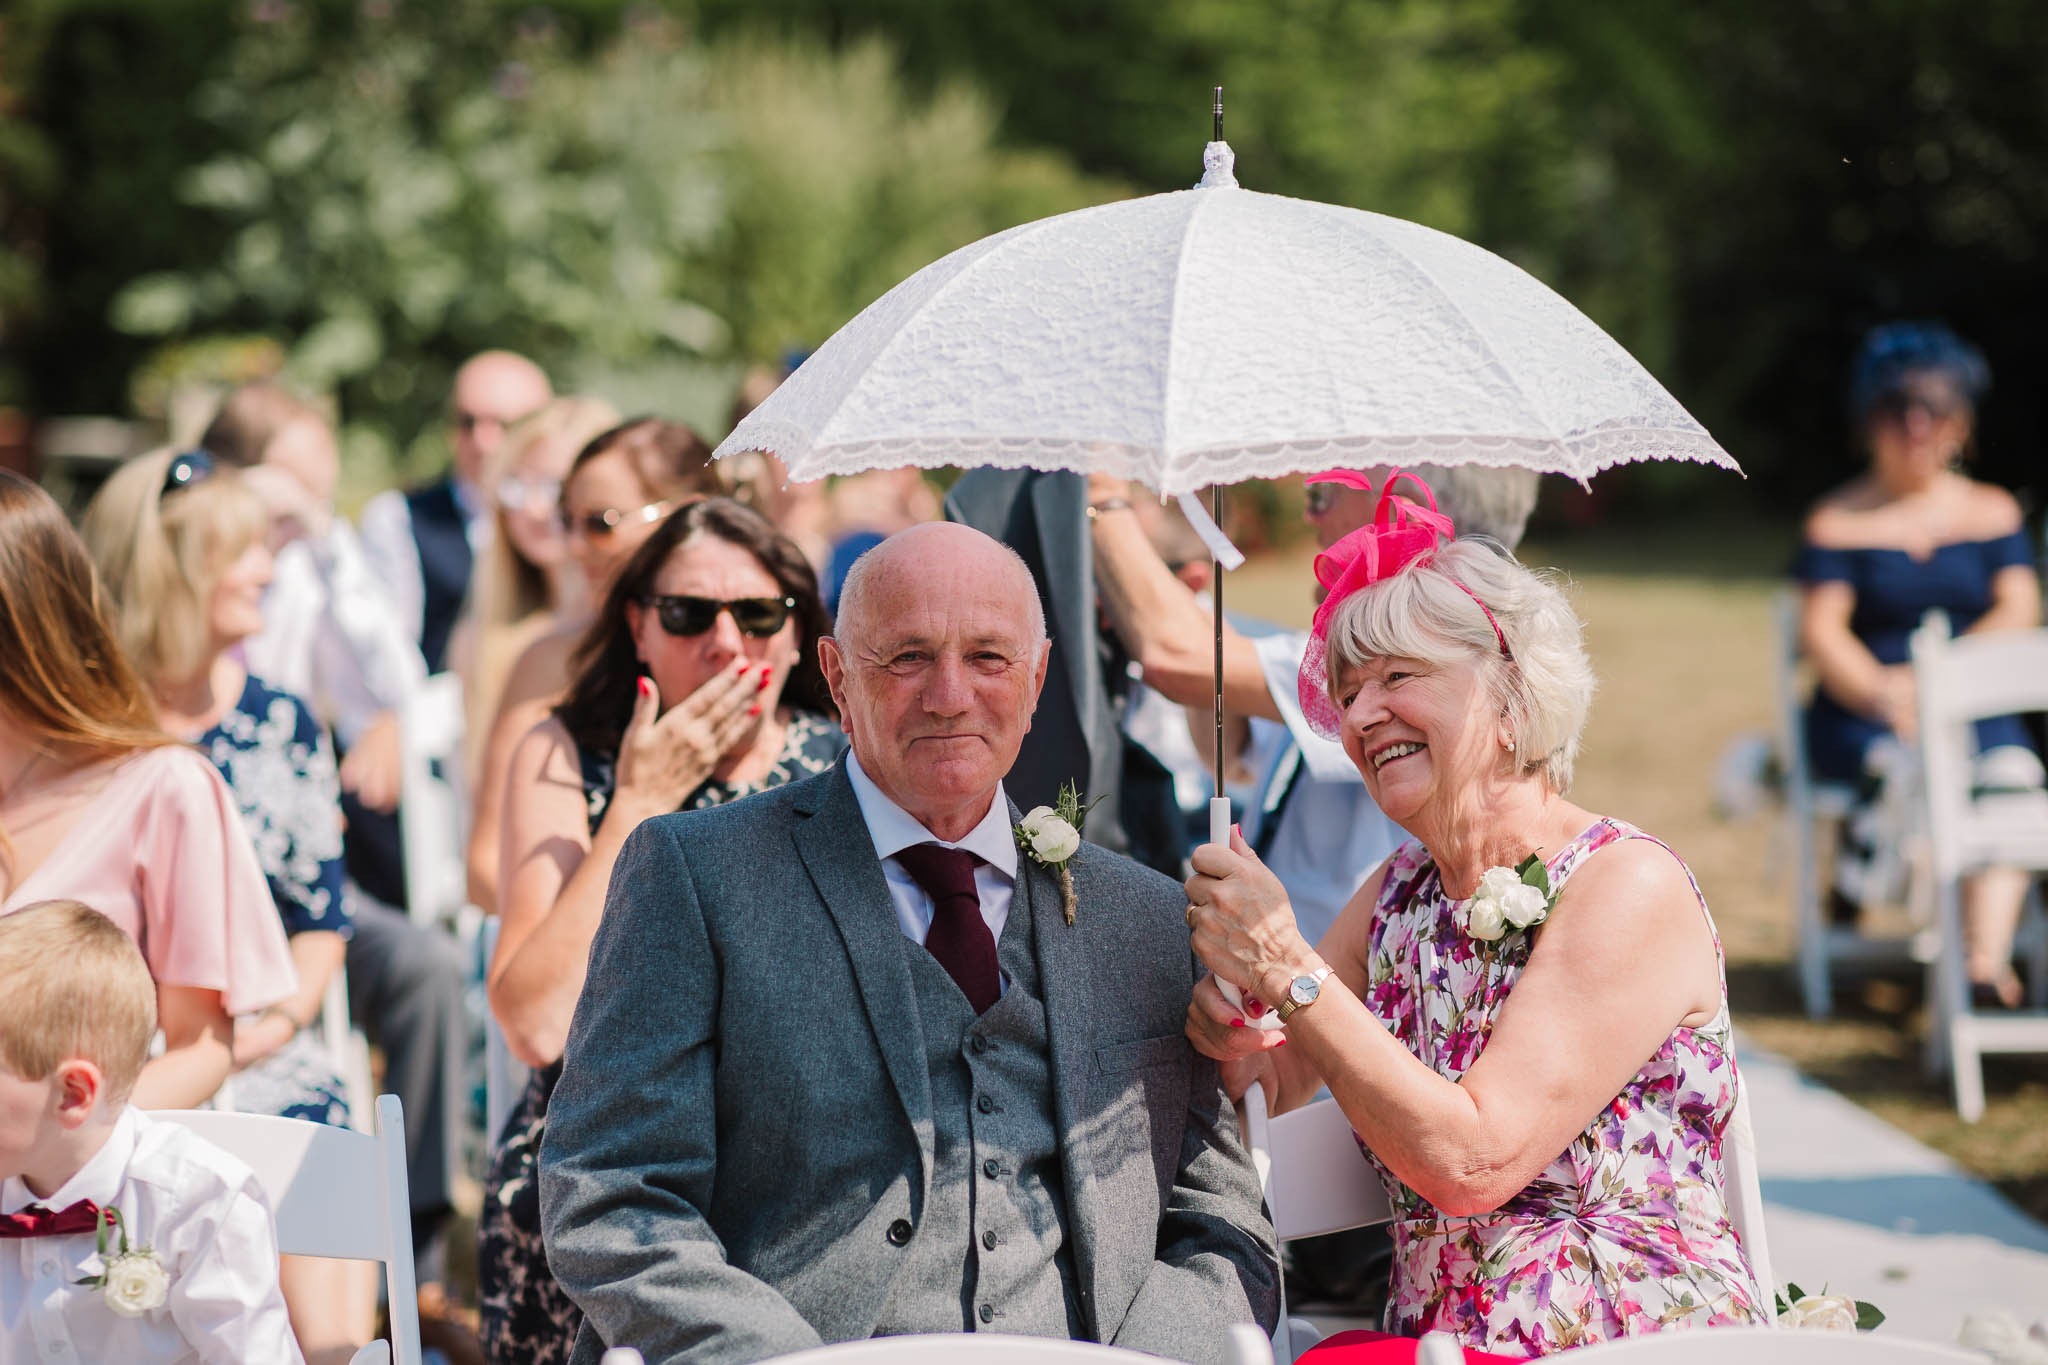 parents with umbrella at sunny summer wedding